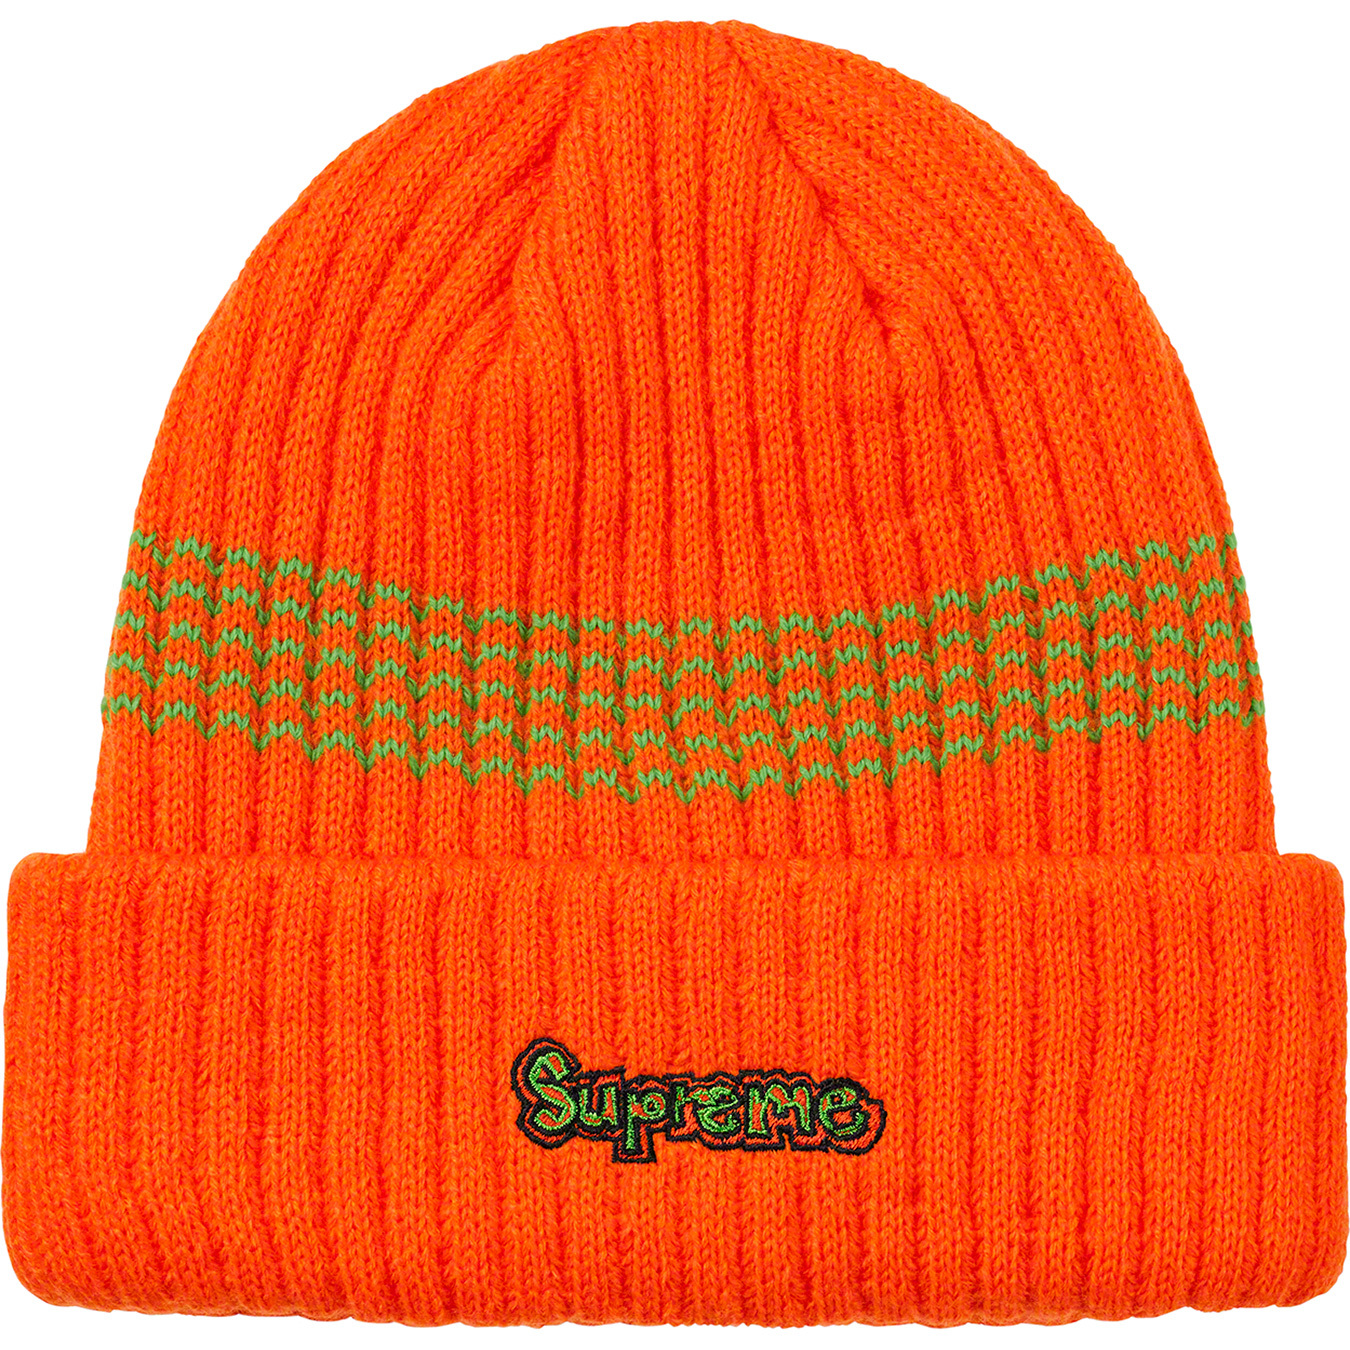 supreme-19aw-19fw-fall-winter-gonz-logo-beanie